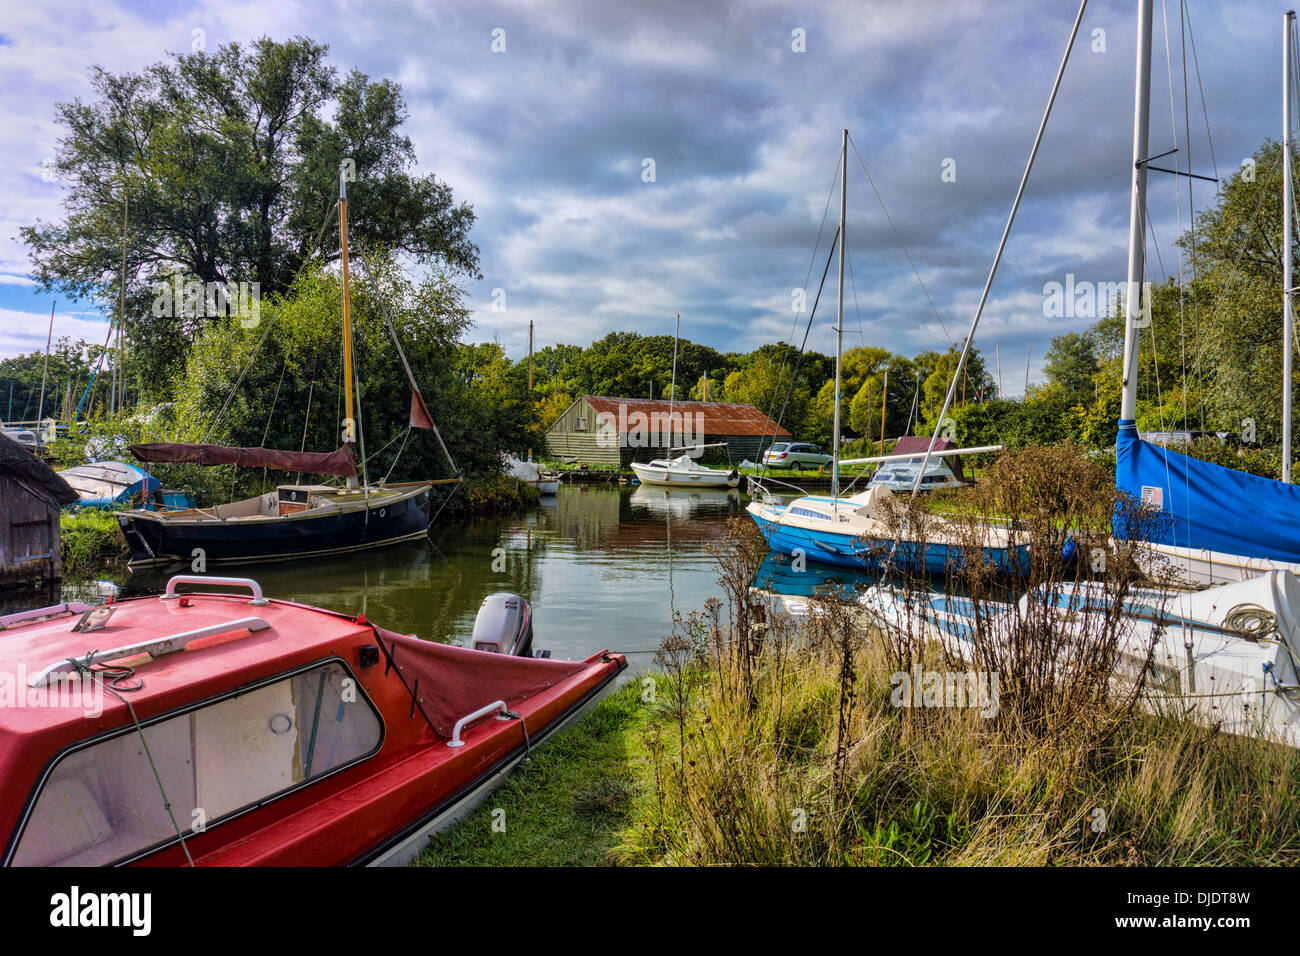 Hickling parish moorings, Norfolk Broads - Stock Image